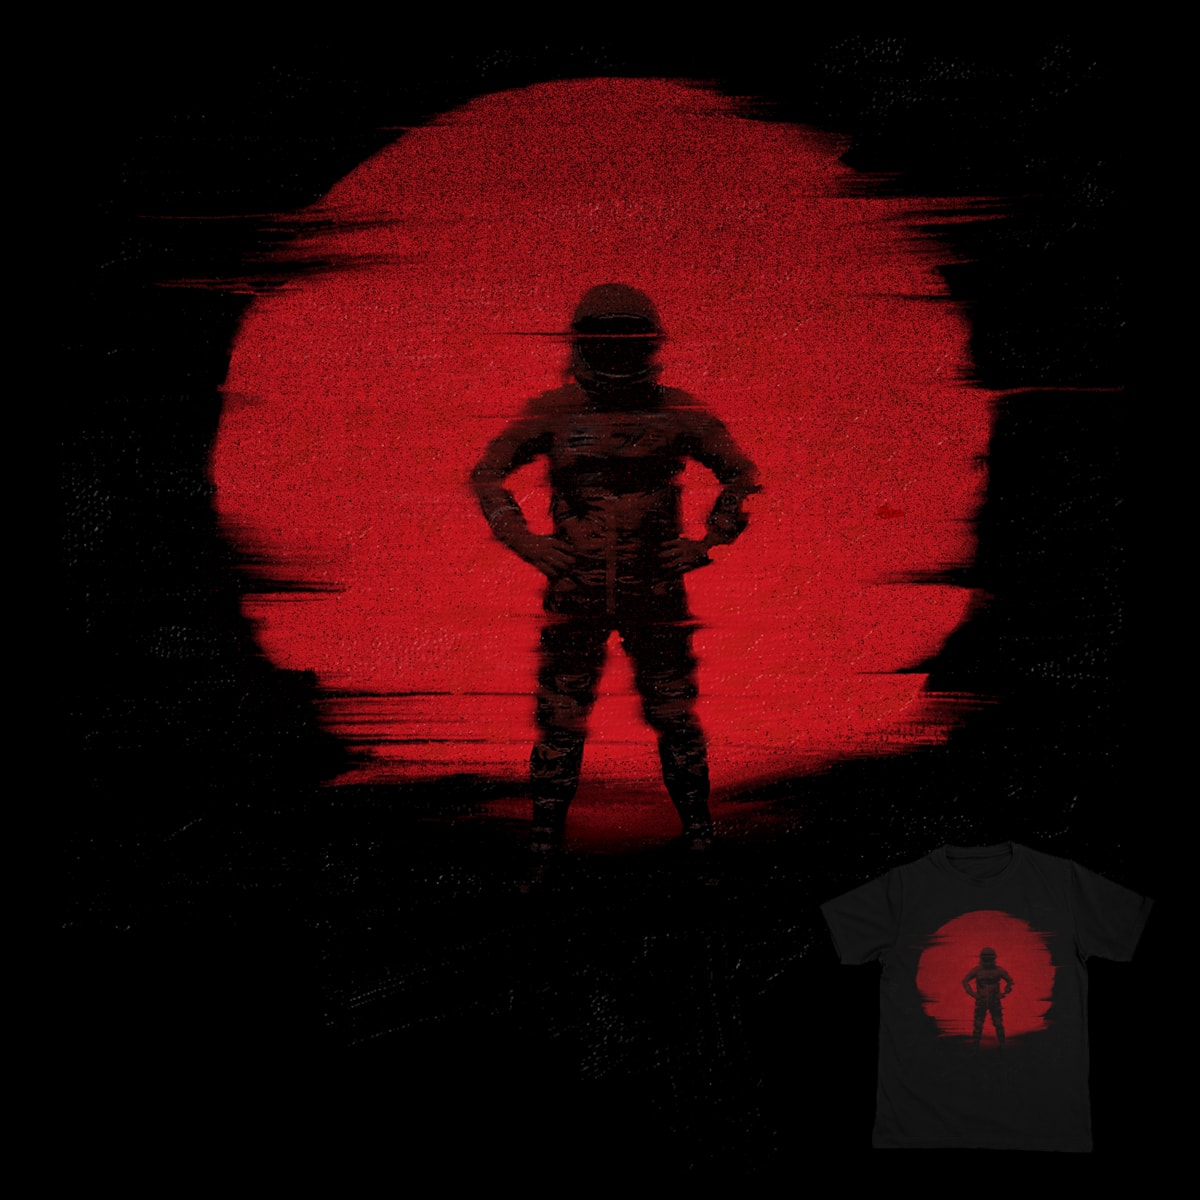 Red Planet by the110 on Threadless